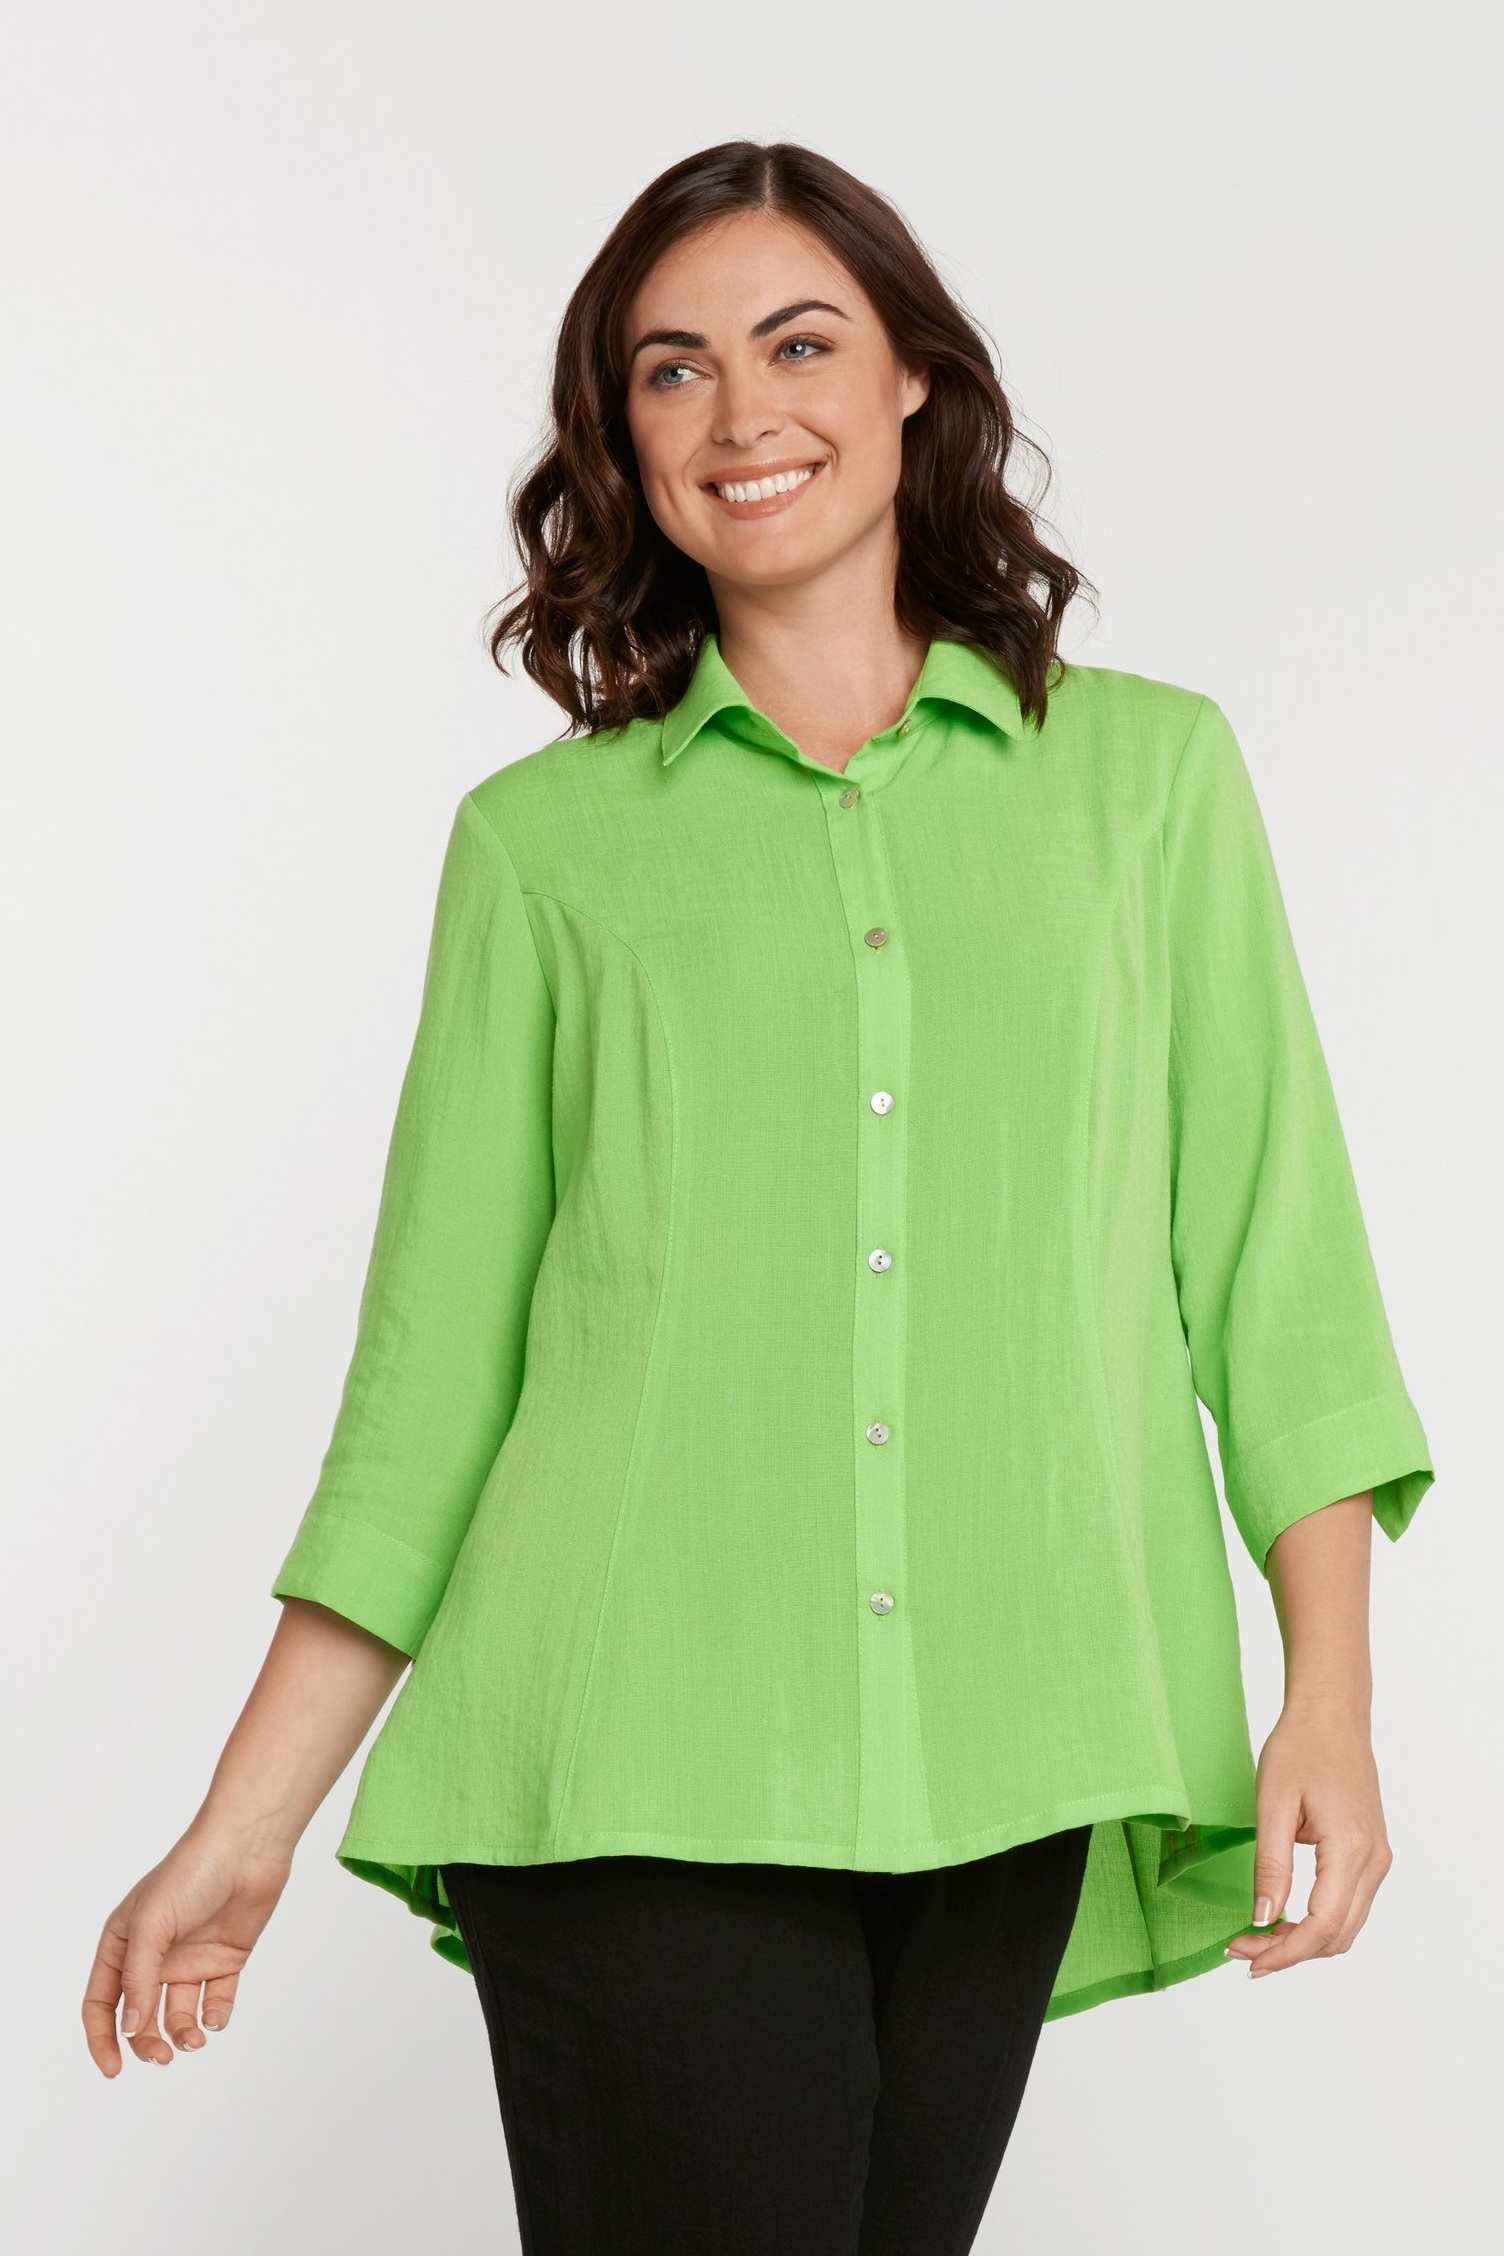 AA224 - Veronica Button-Up Blouse